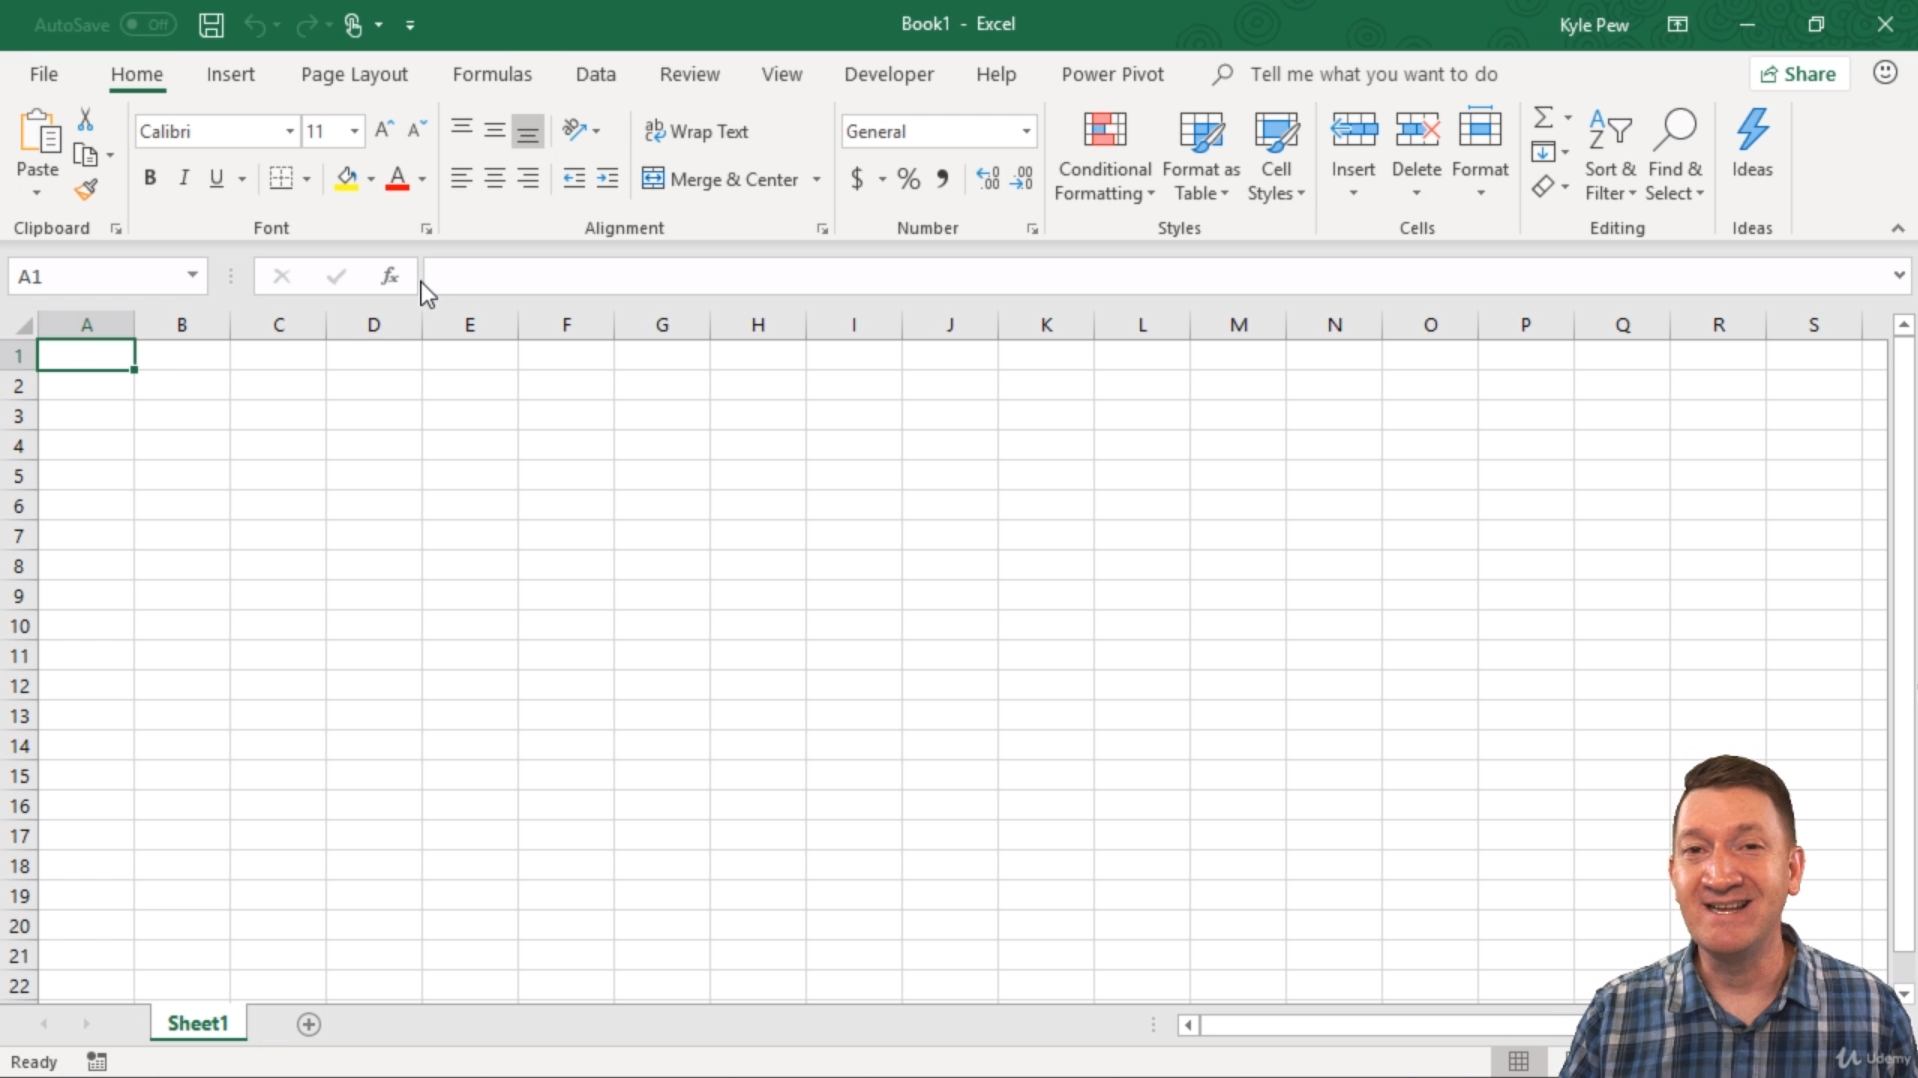 A screenshot of a blank Excel spreadsheet with a person in the bottom corner speaking